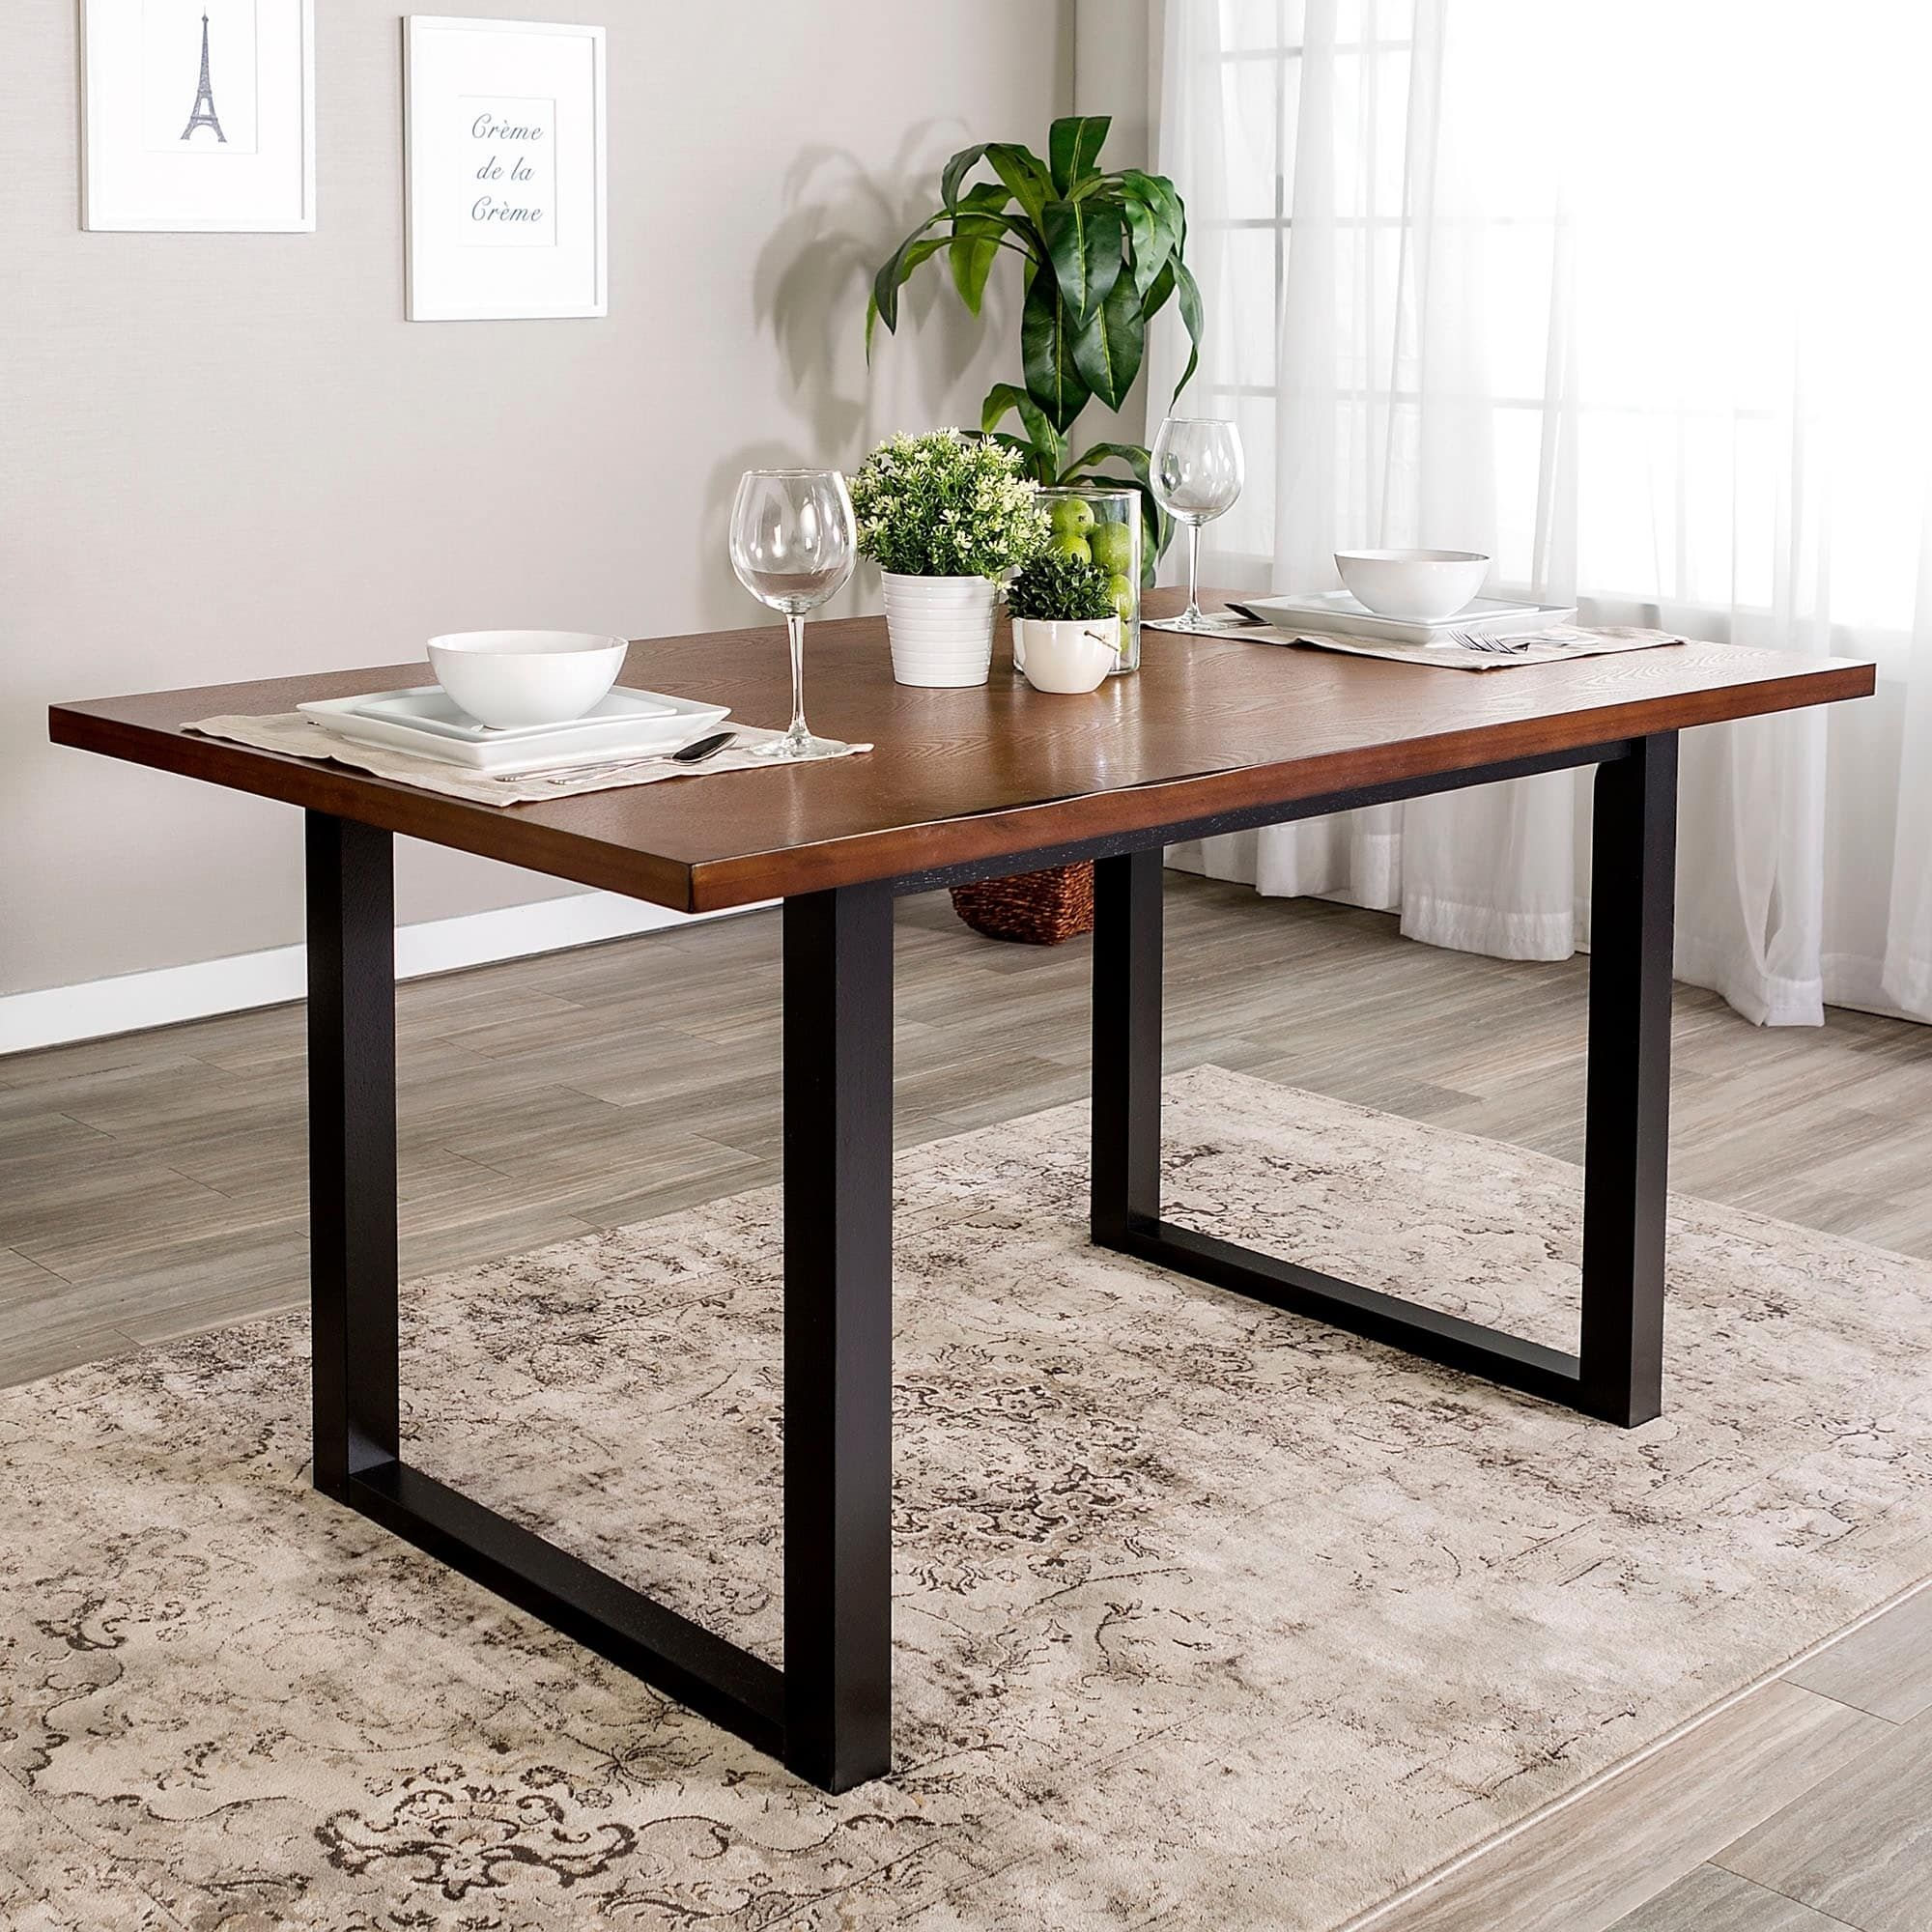 Carbon Loft Delano Two Tone Wood Dining Table 60 X 36 X 30h Traditional Dining Room Table Dining Table Black Dining Room Furniture